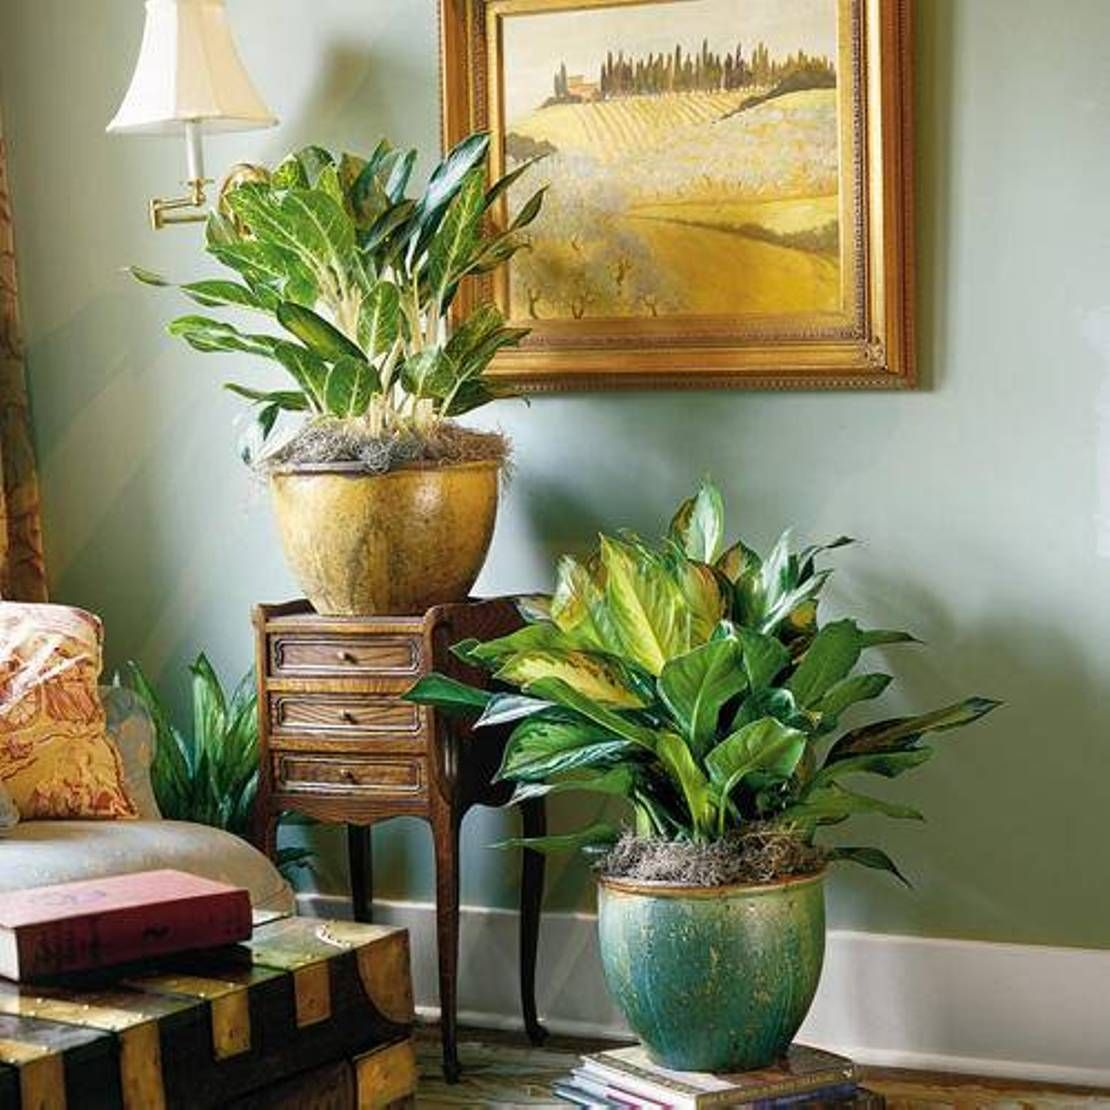 Home designs and decor beautiful amazing indoor plants for Room decor ideas with plants